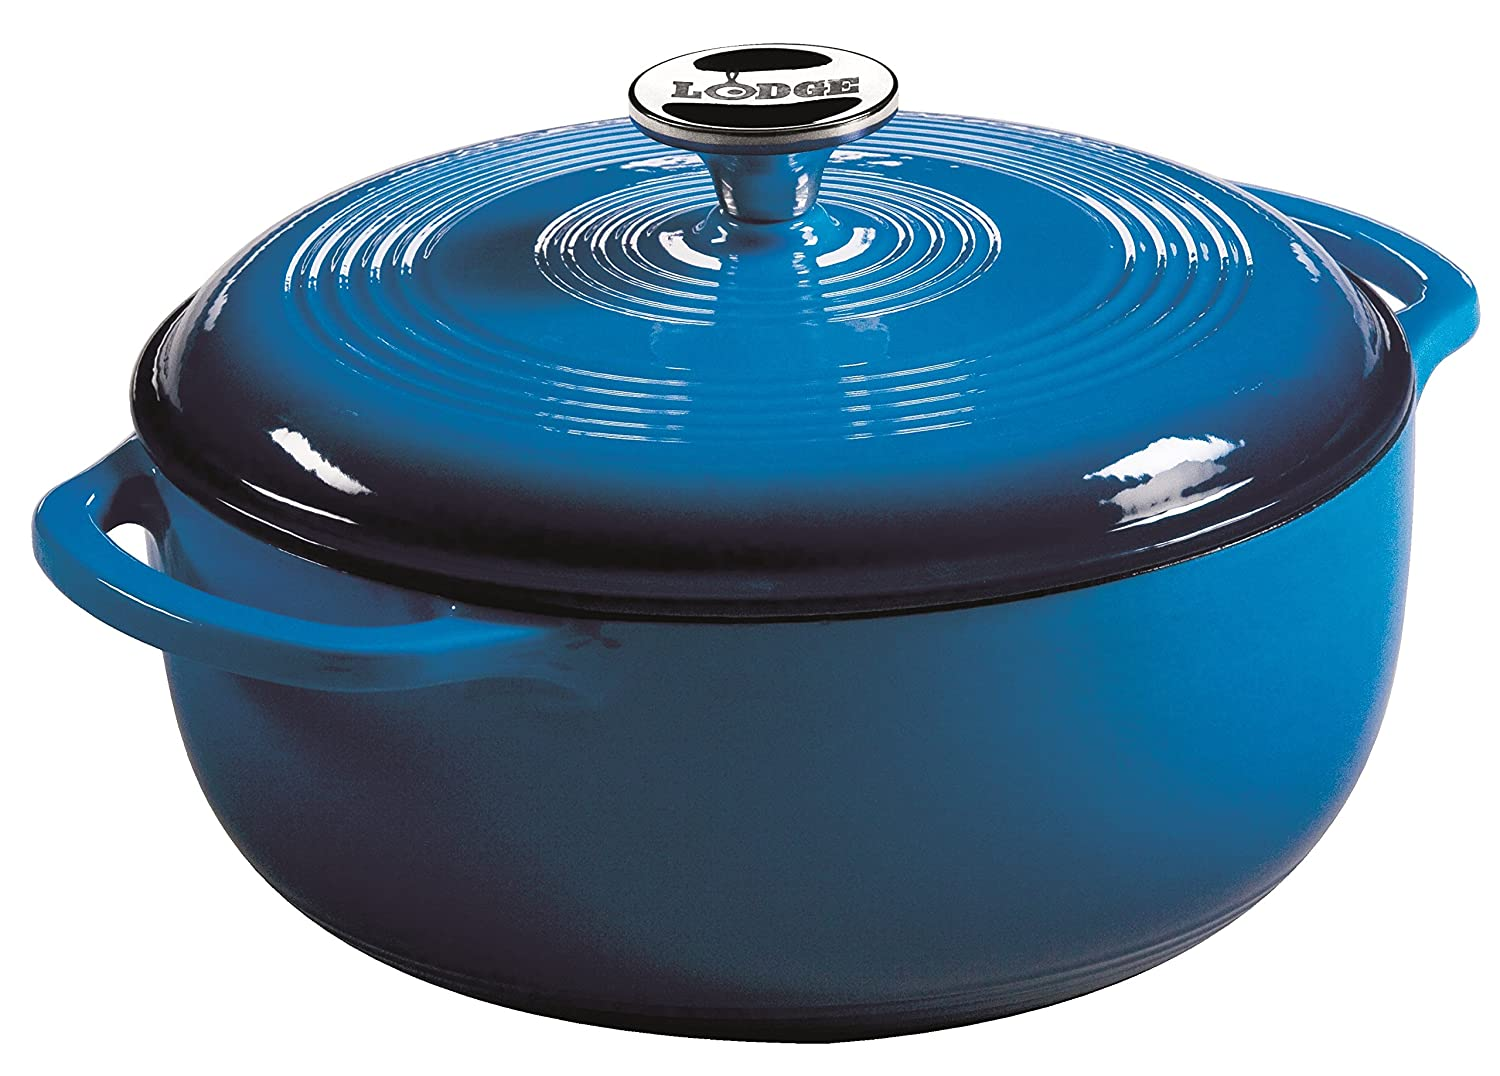 Lodge 4.5 Quart Enameled Cast Iron Dutch Oven. Blue Enamel Iron Dutch Oven (Carribbean Blue) - EC4D33